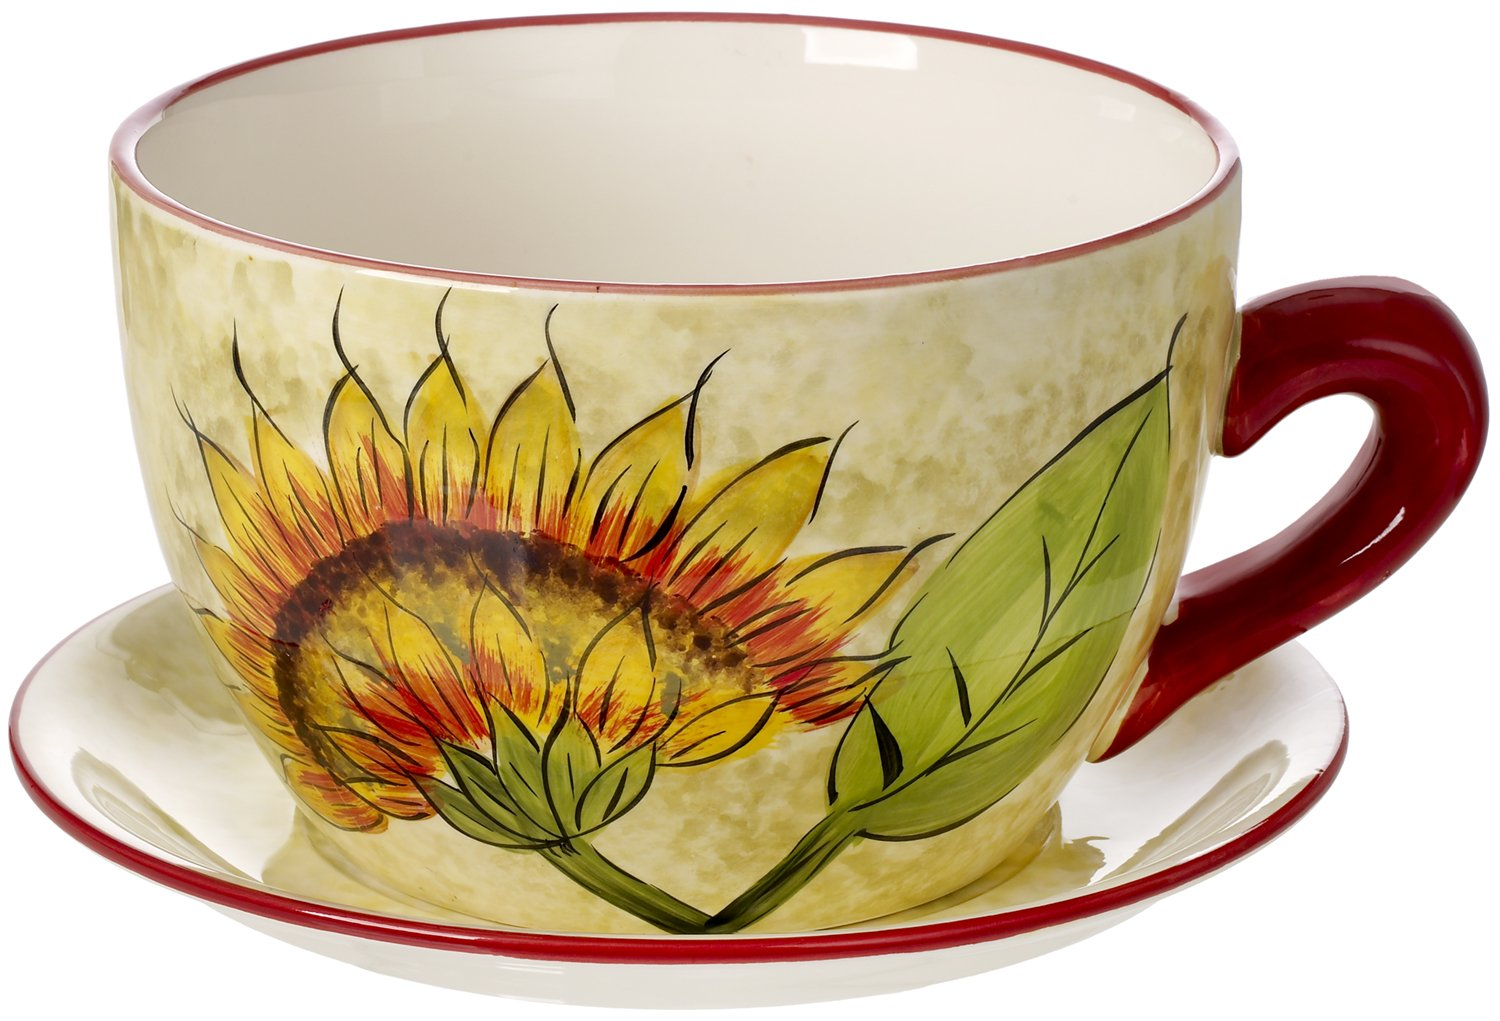 5th Ave Store Cucina Italiana Ceramic Planter Teacup and Saucer Indoor, Outdoor Sunflower Decor